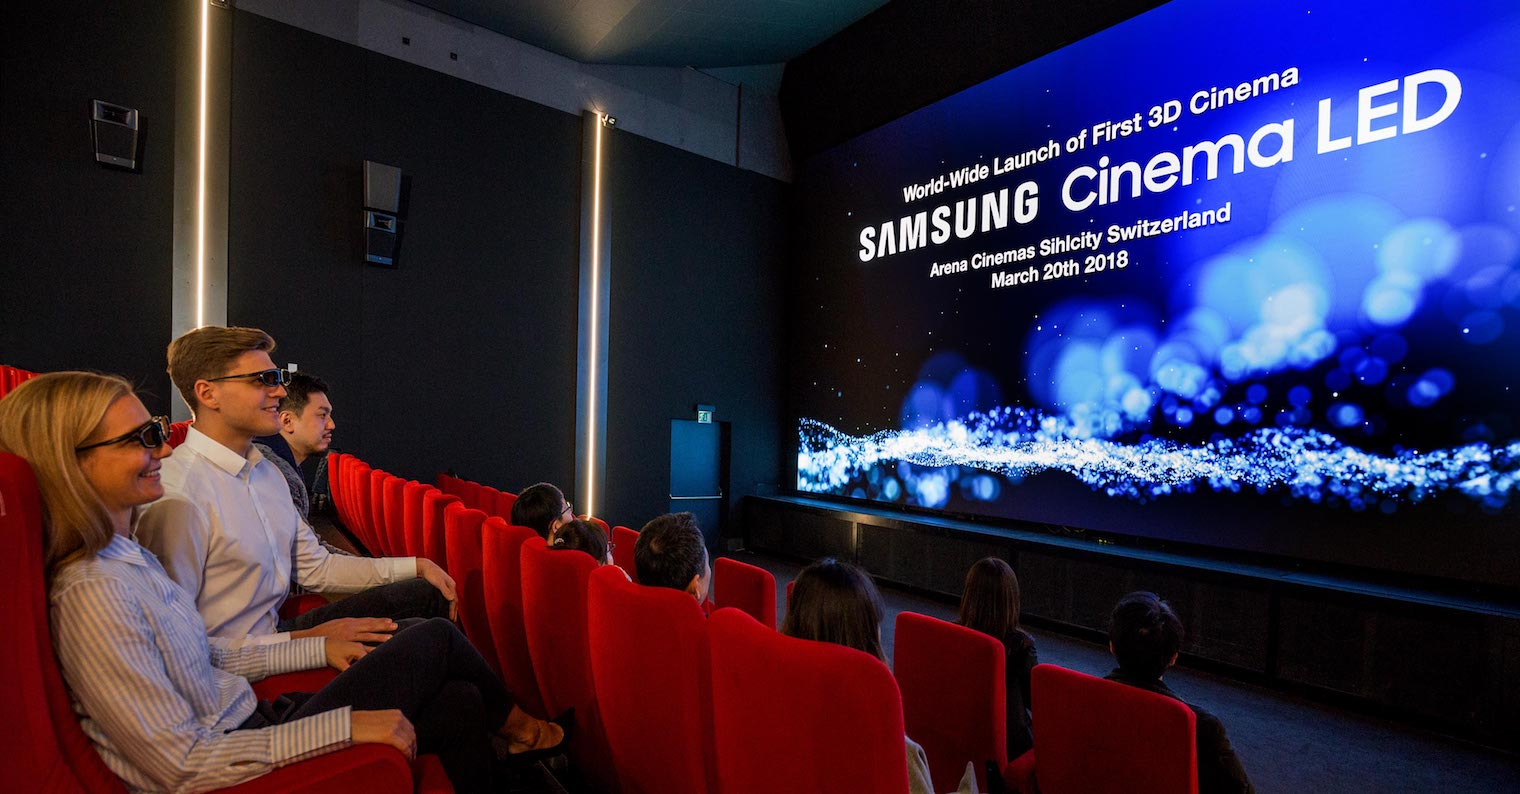 Samsung-3D-Cinema-FB